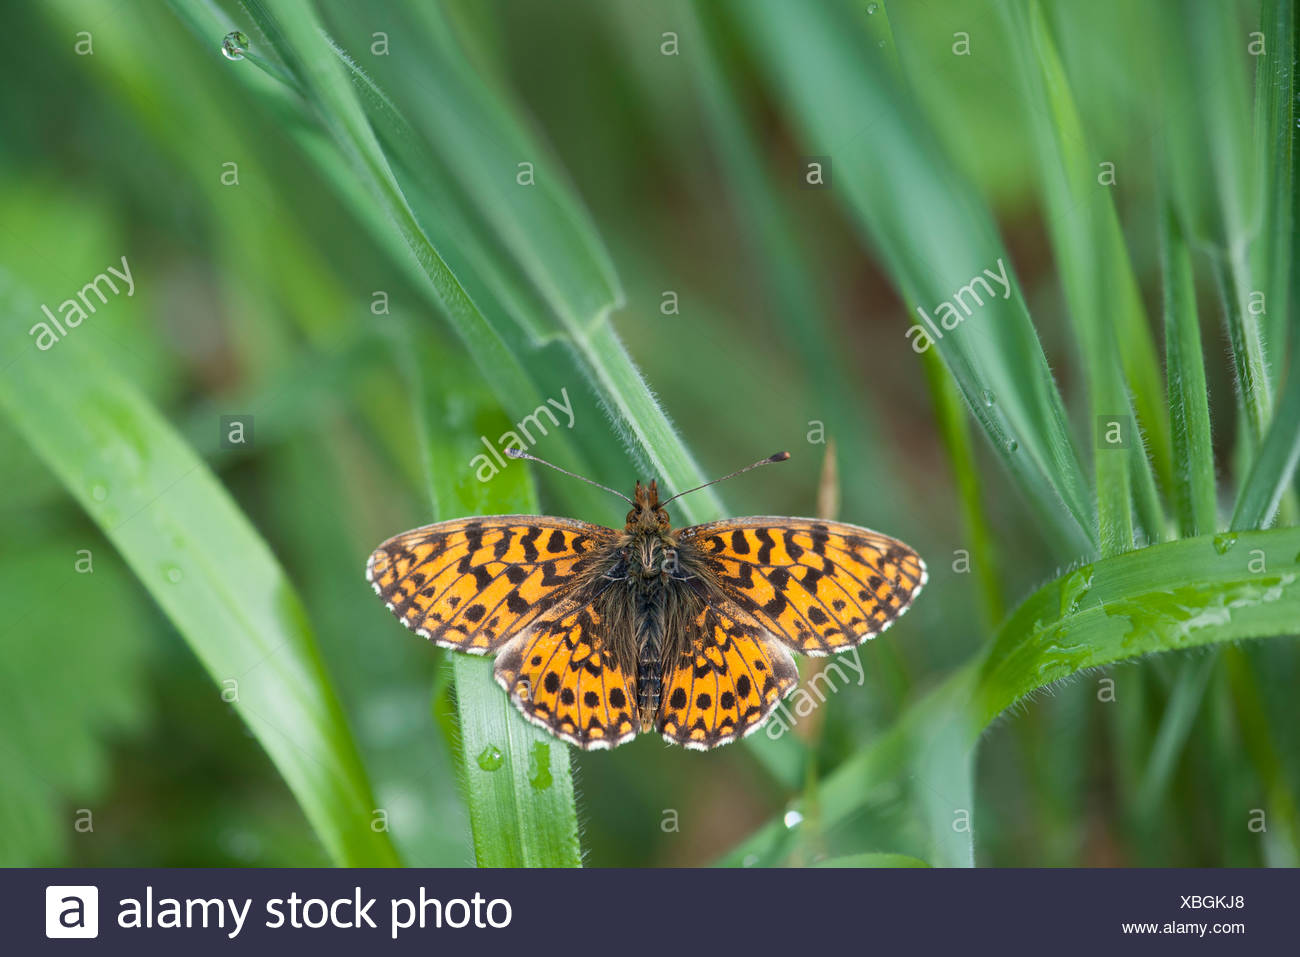 Butterfly flying among leaves - Stock Image